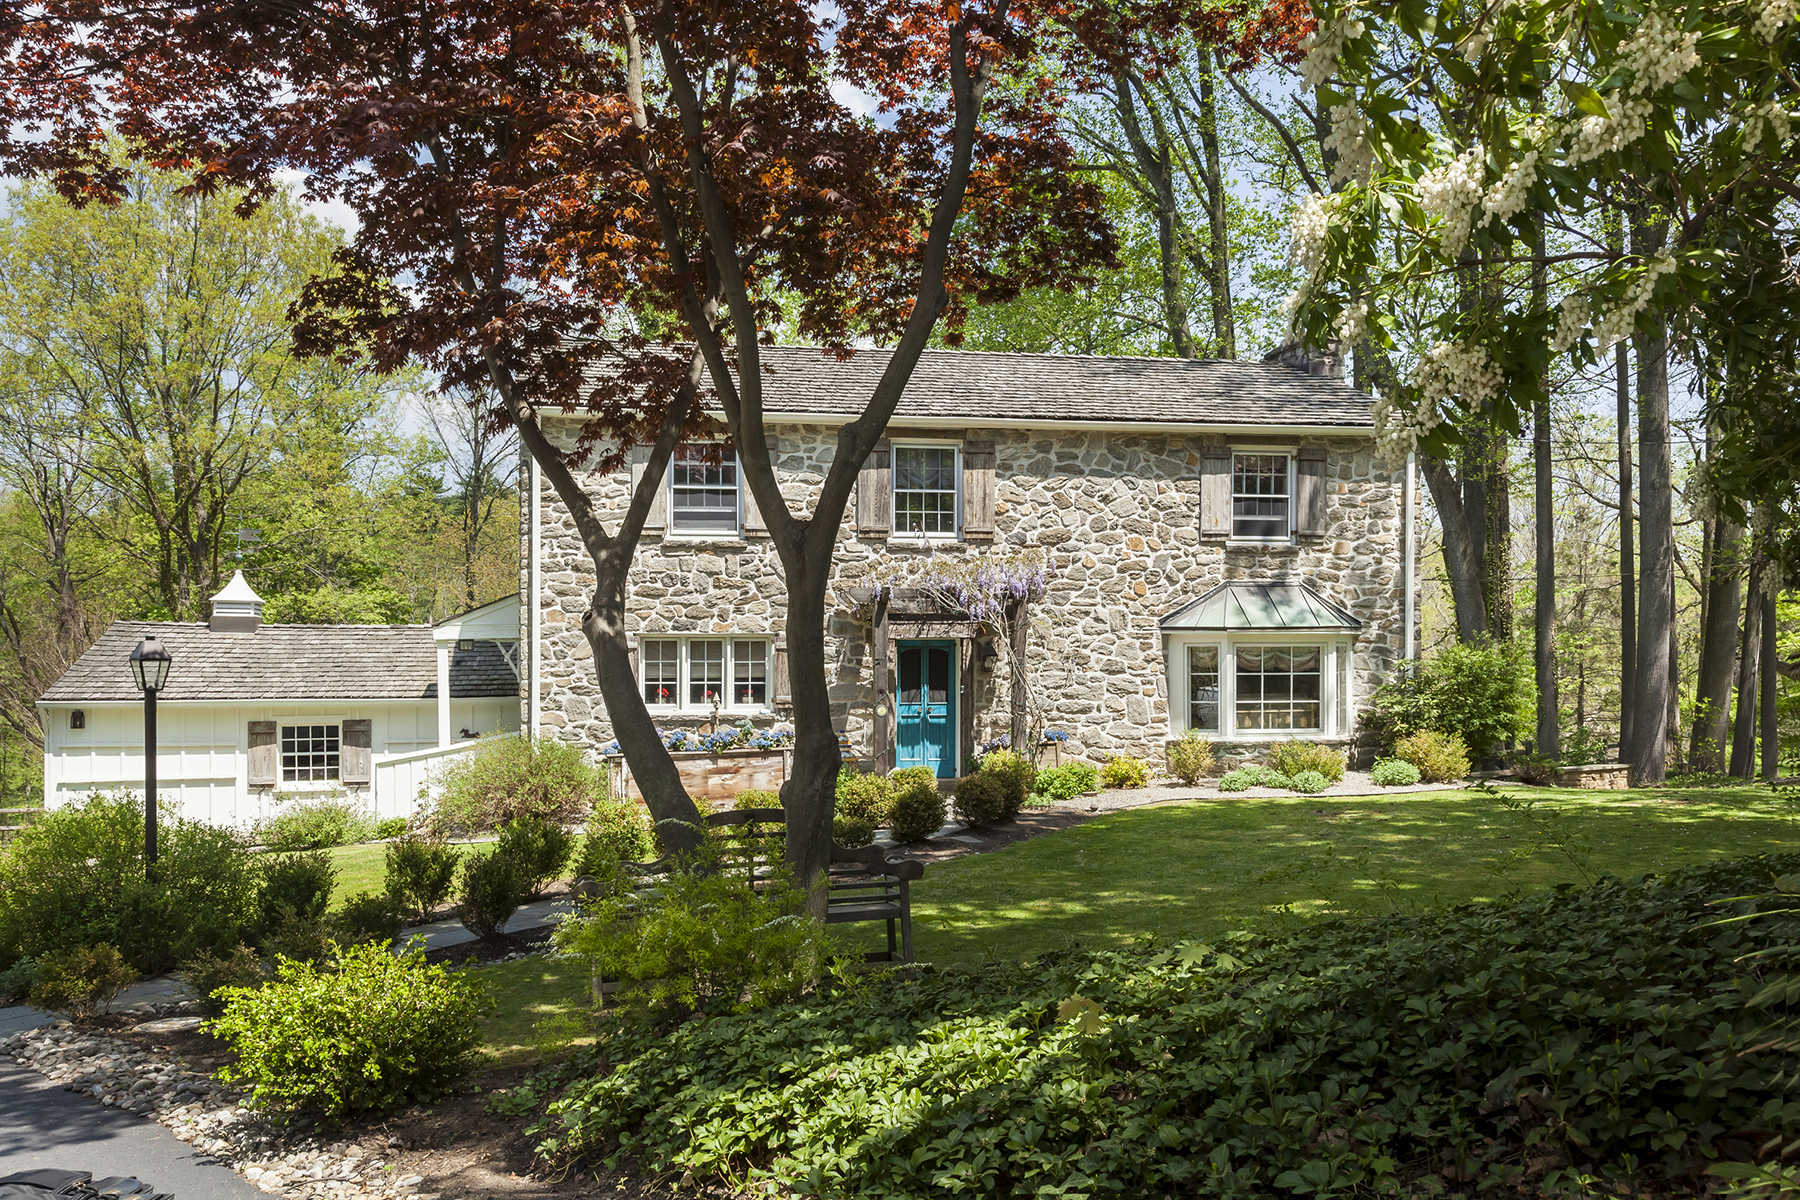 Single Family Home for Sale at Renovated Bryn Mawr Stone Colonial 643 Old Gulph Road Bryn Mawr, Pennsylvania 19010 United States